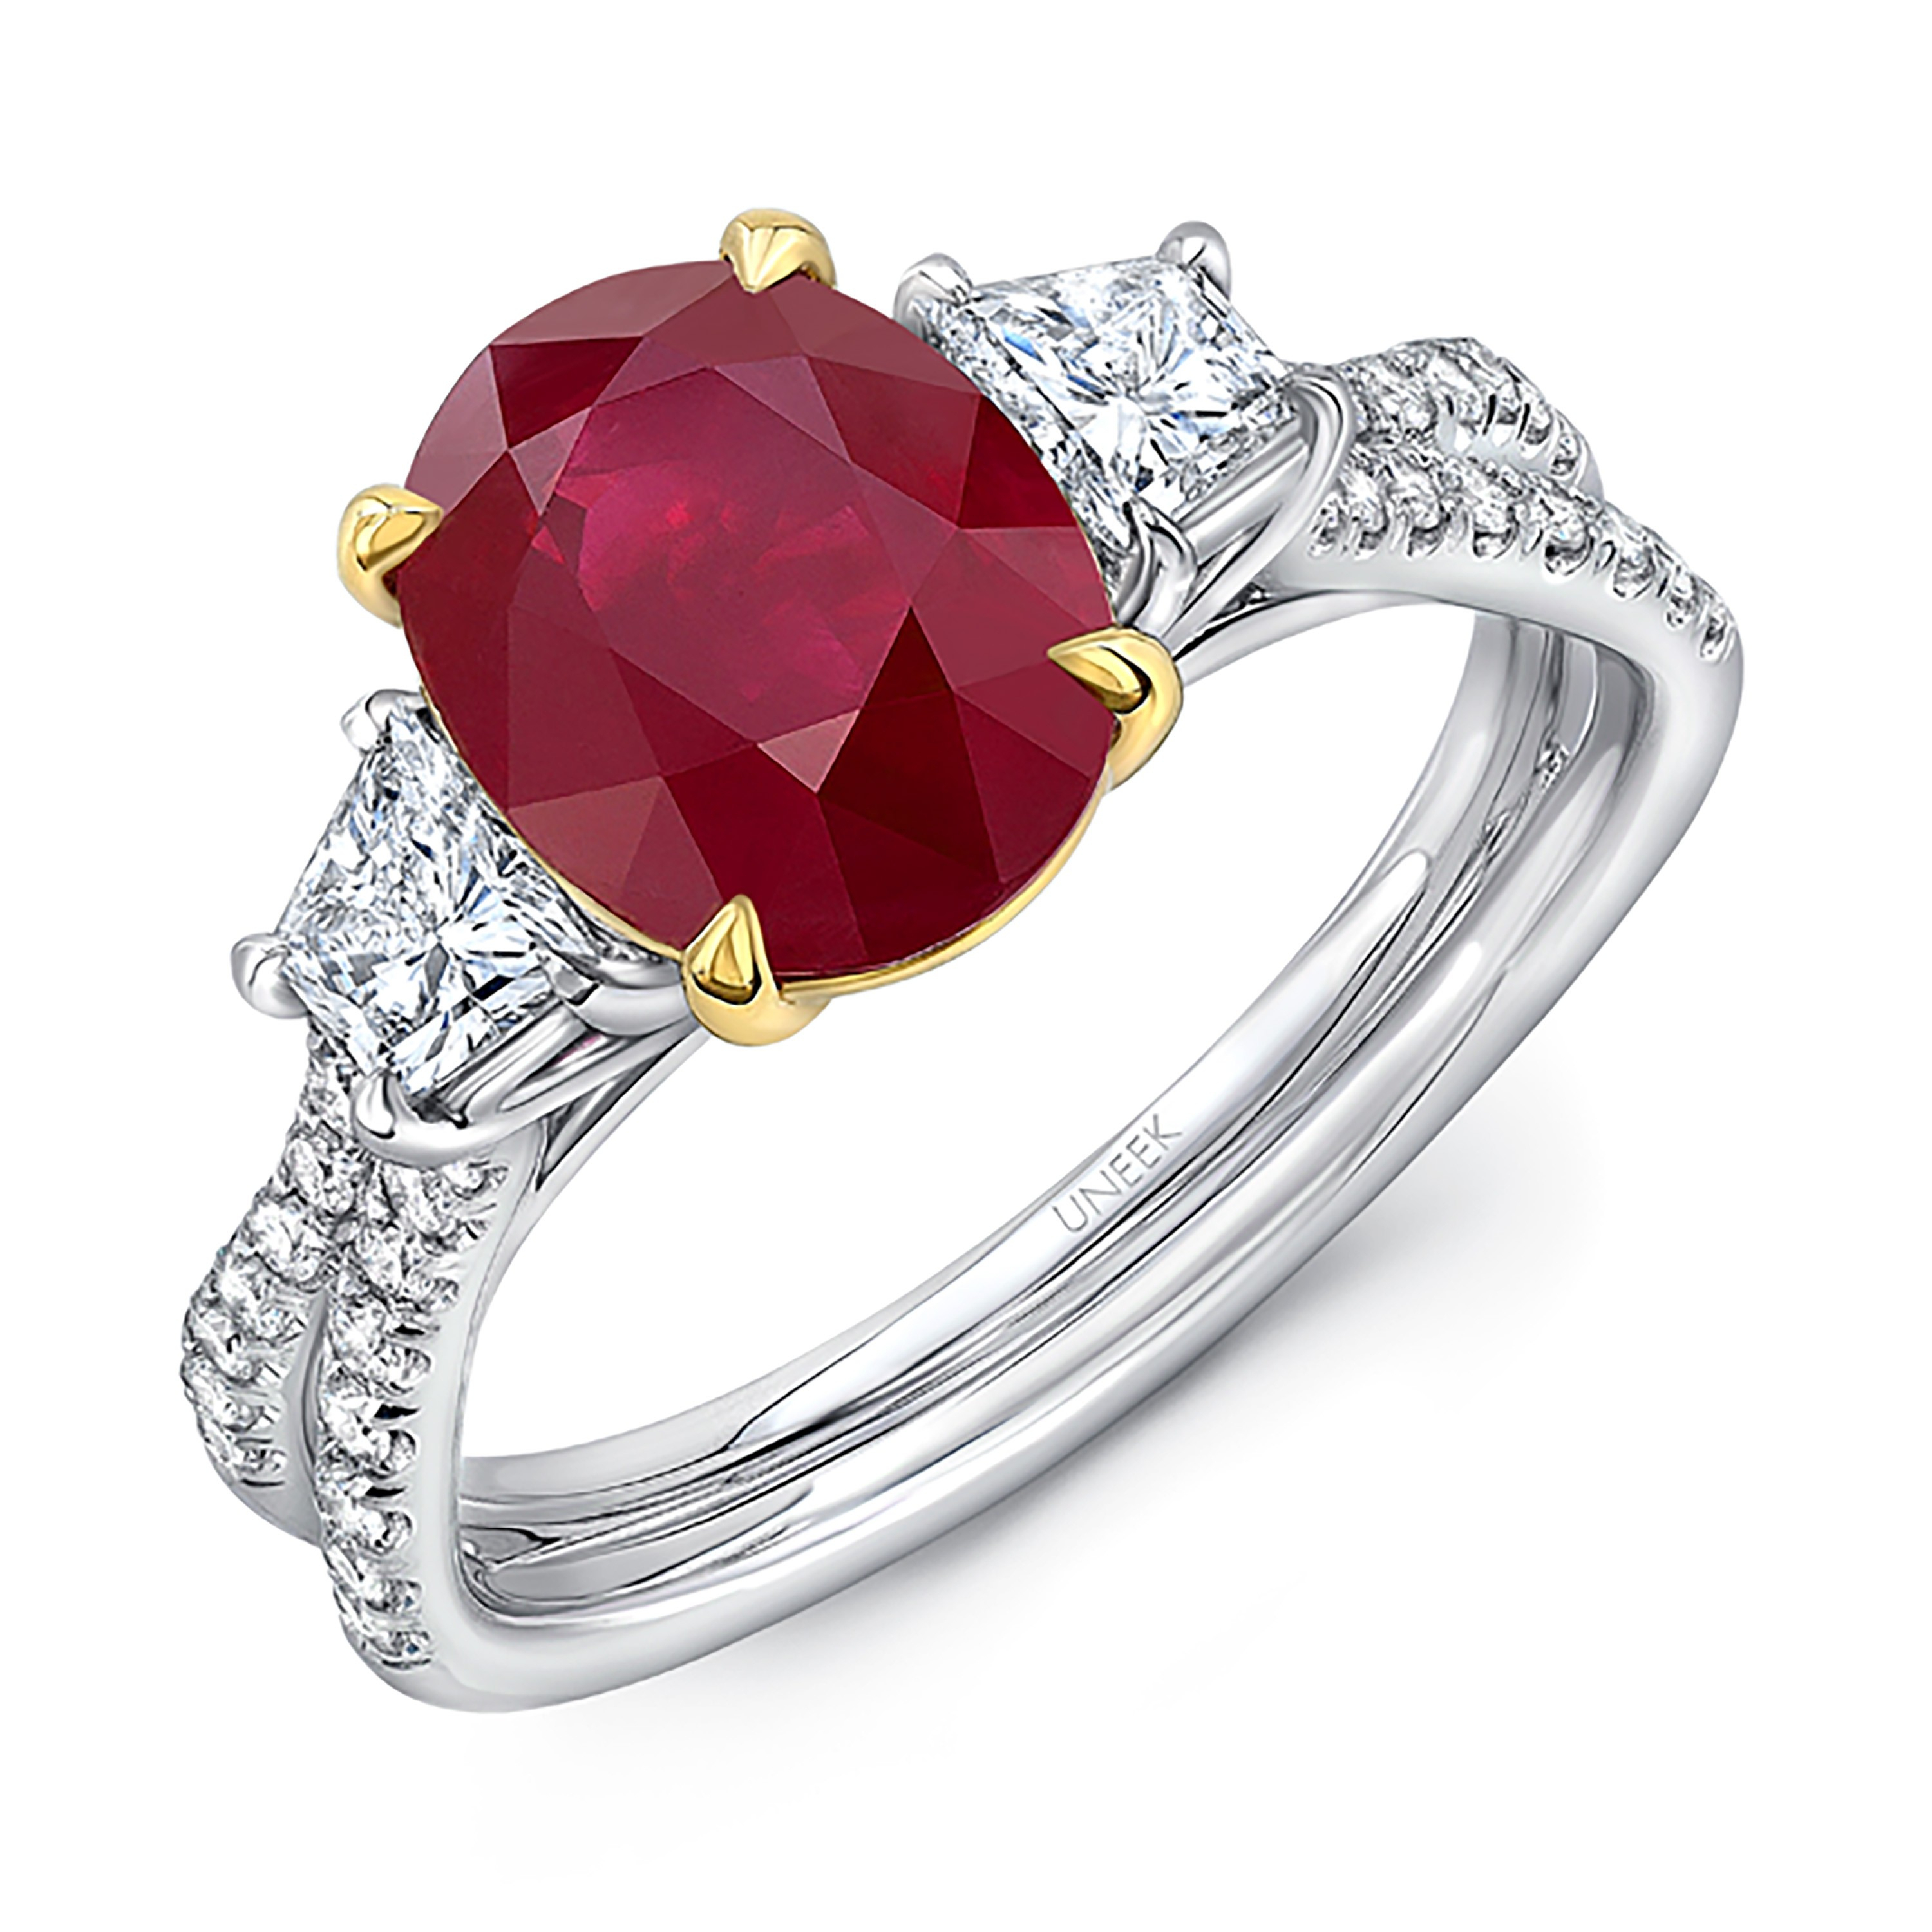 Uneek Ruby And Diamond Three Stone Ring With Oval Ruby Intended For Oval Shaped Ruby Micropavé Rings (View 23 of 25)